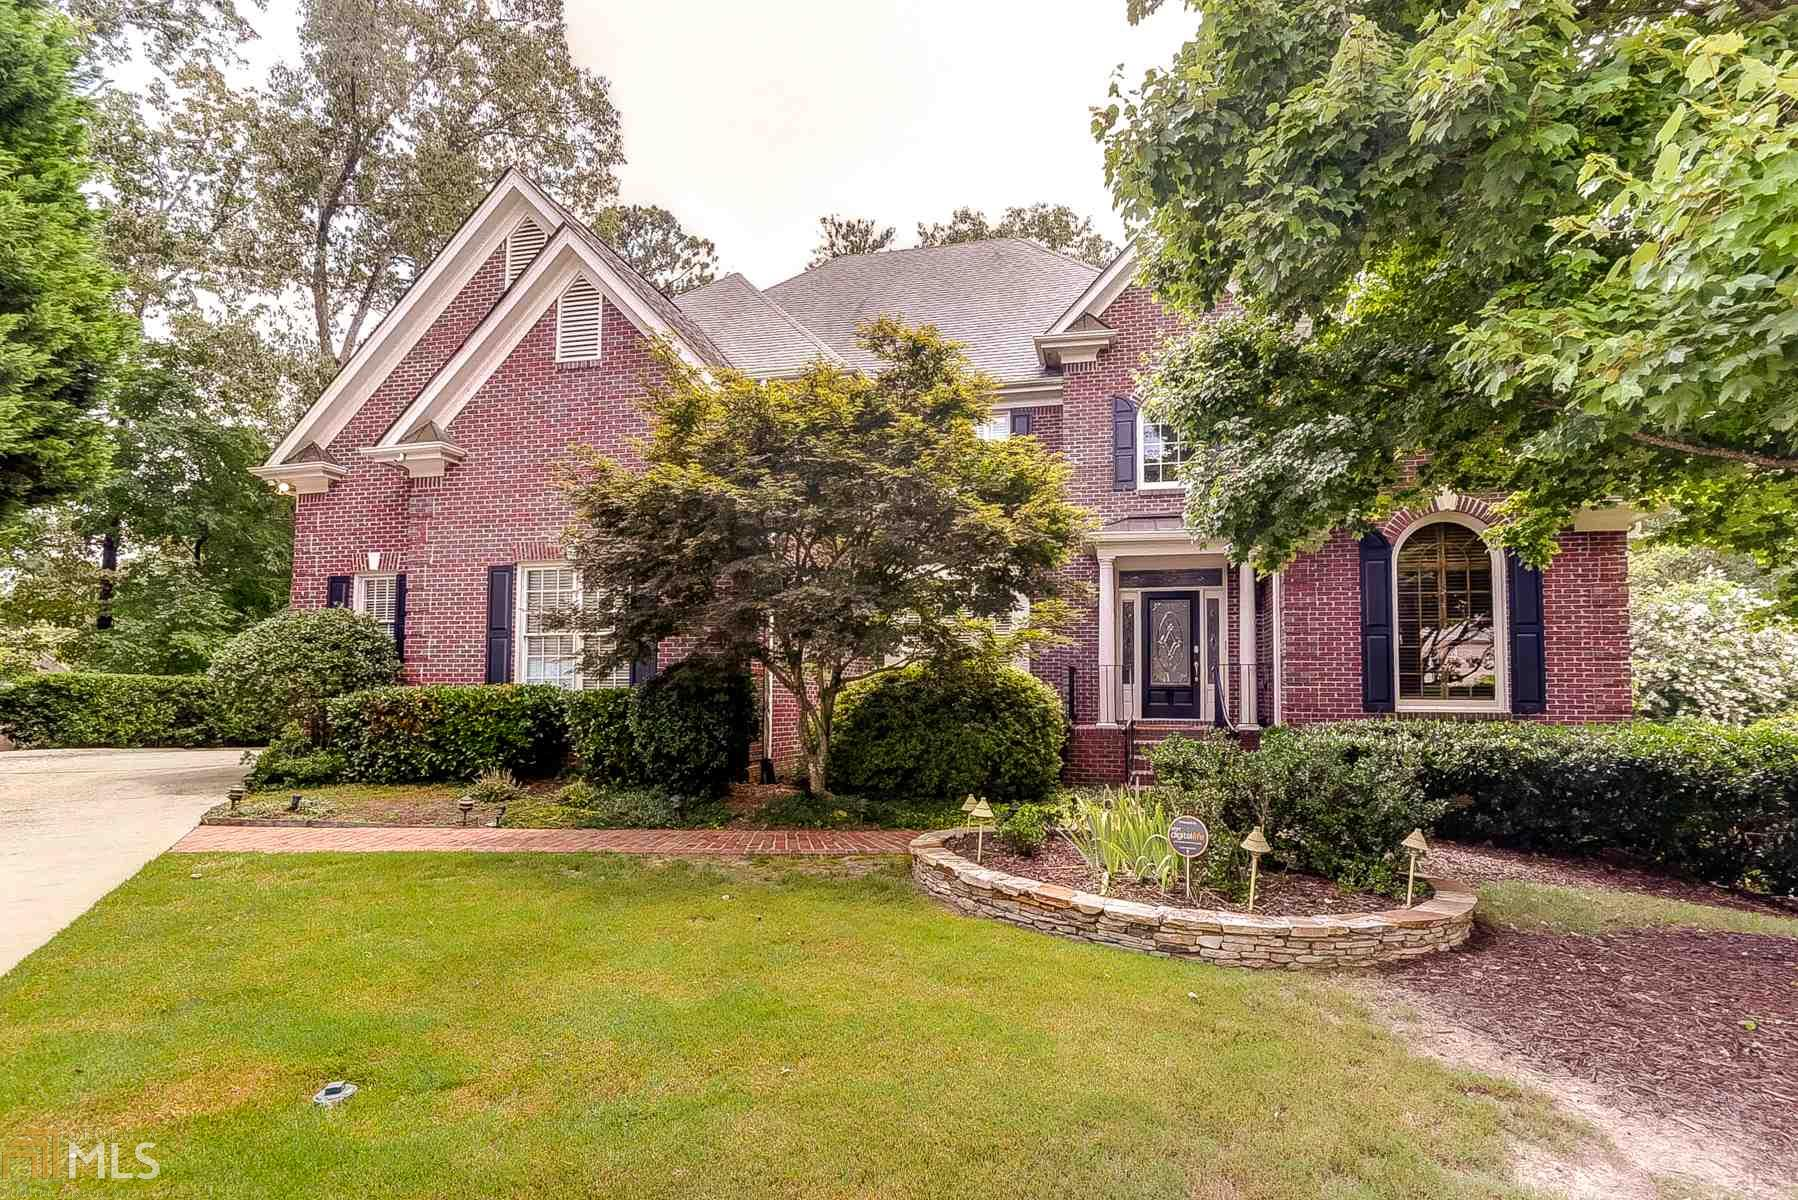 5095 Eves Pl, Roswell, GA 30076